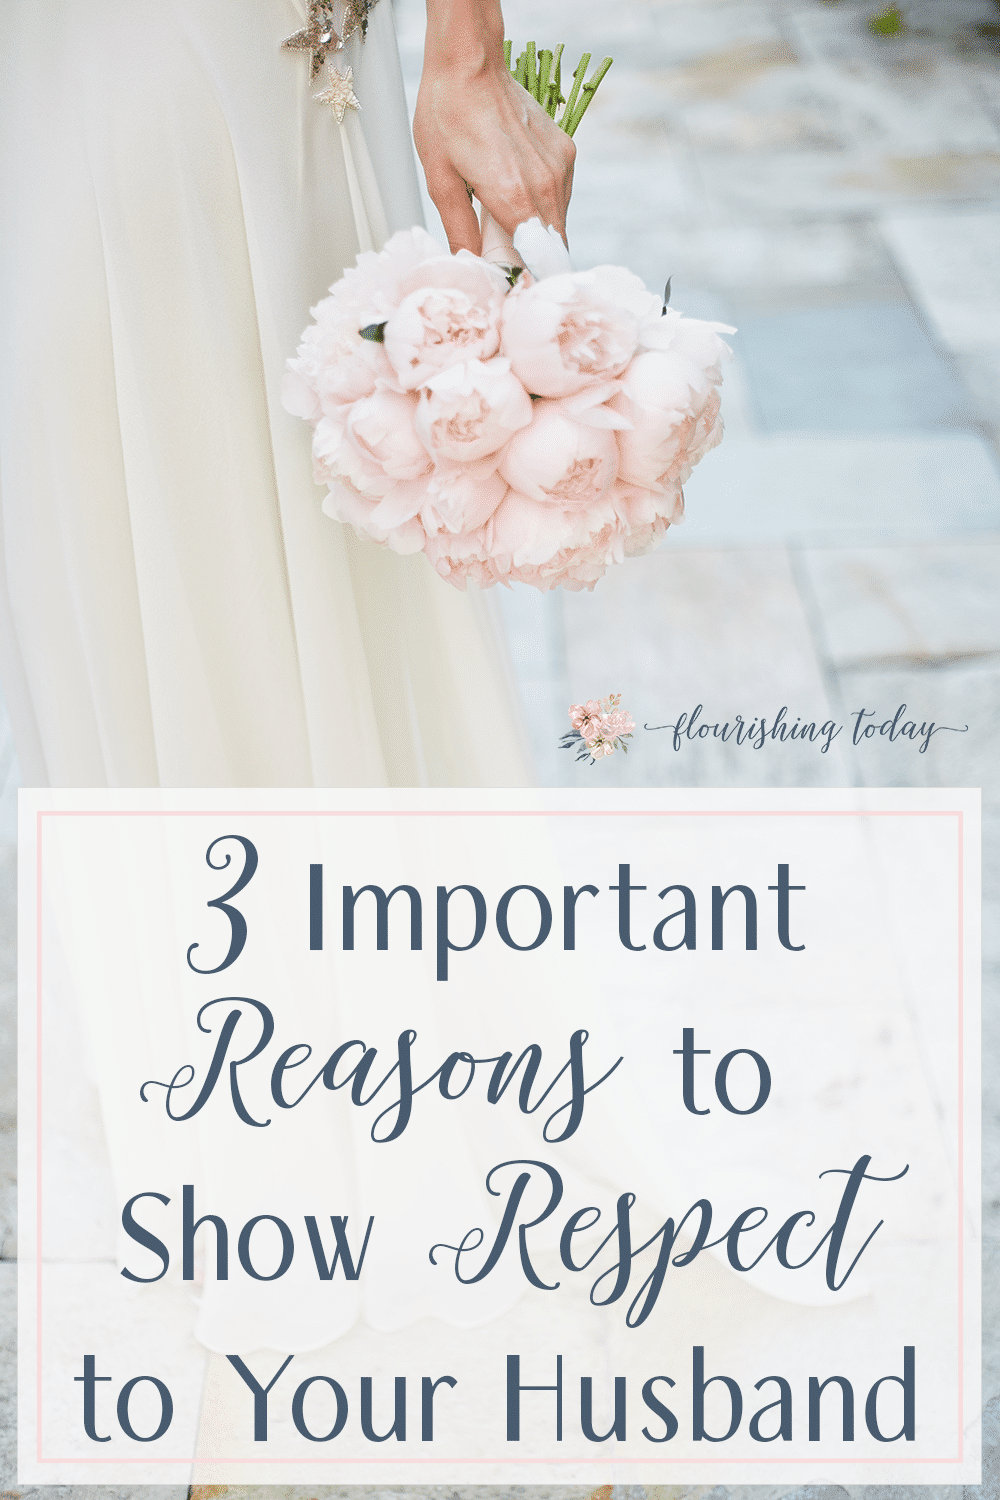 Do you struggle with how to respect your husband? Does his attitude or action make it difficult for you to honor him? Here are a few reasons to show respect to your husband even when he doesn't deserve it. #marriage #marriagetips #freeprintable